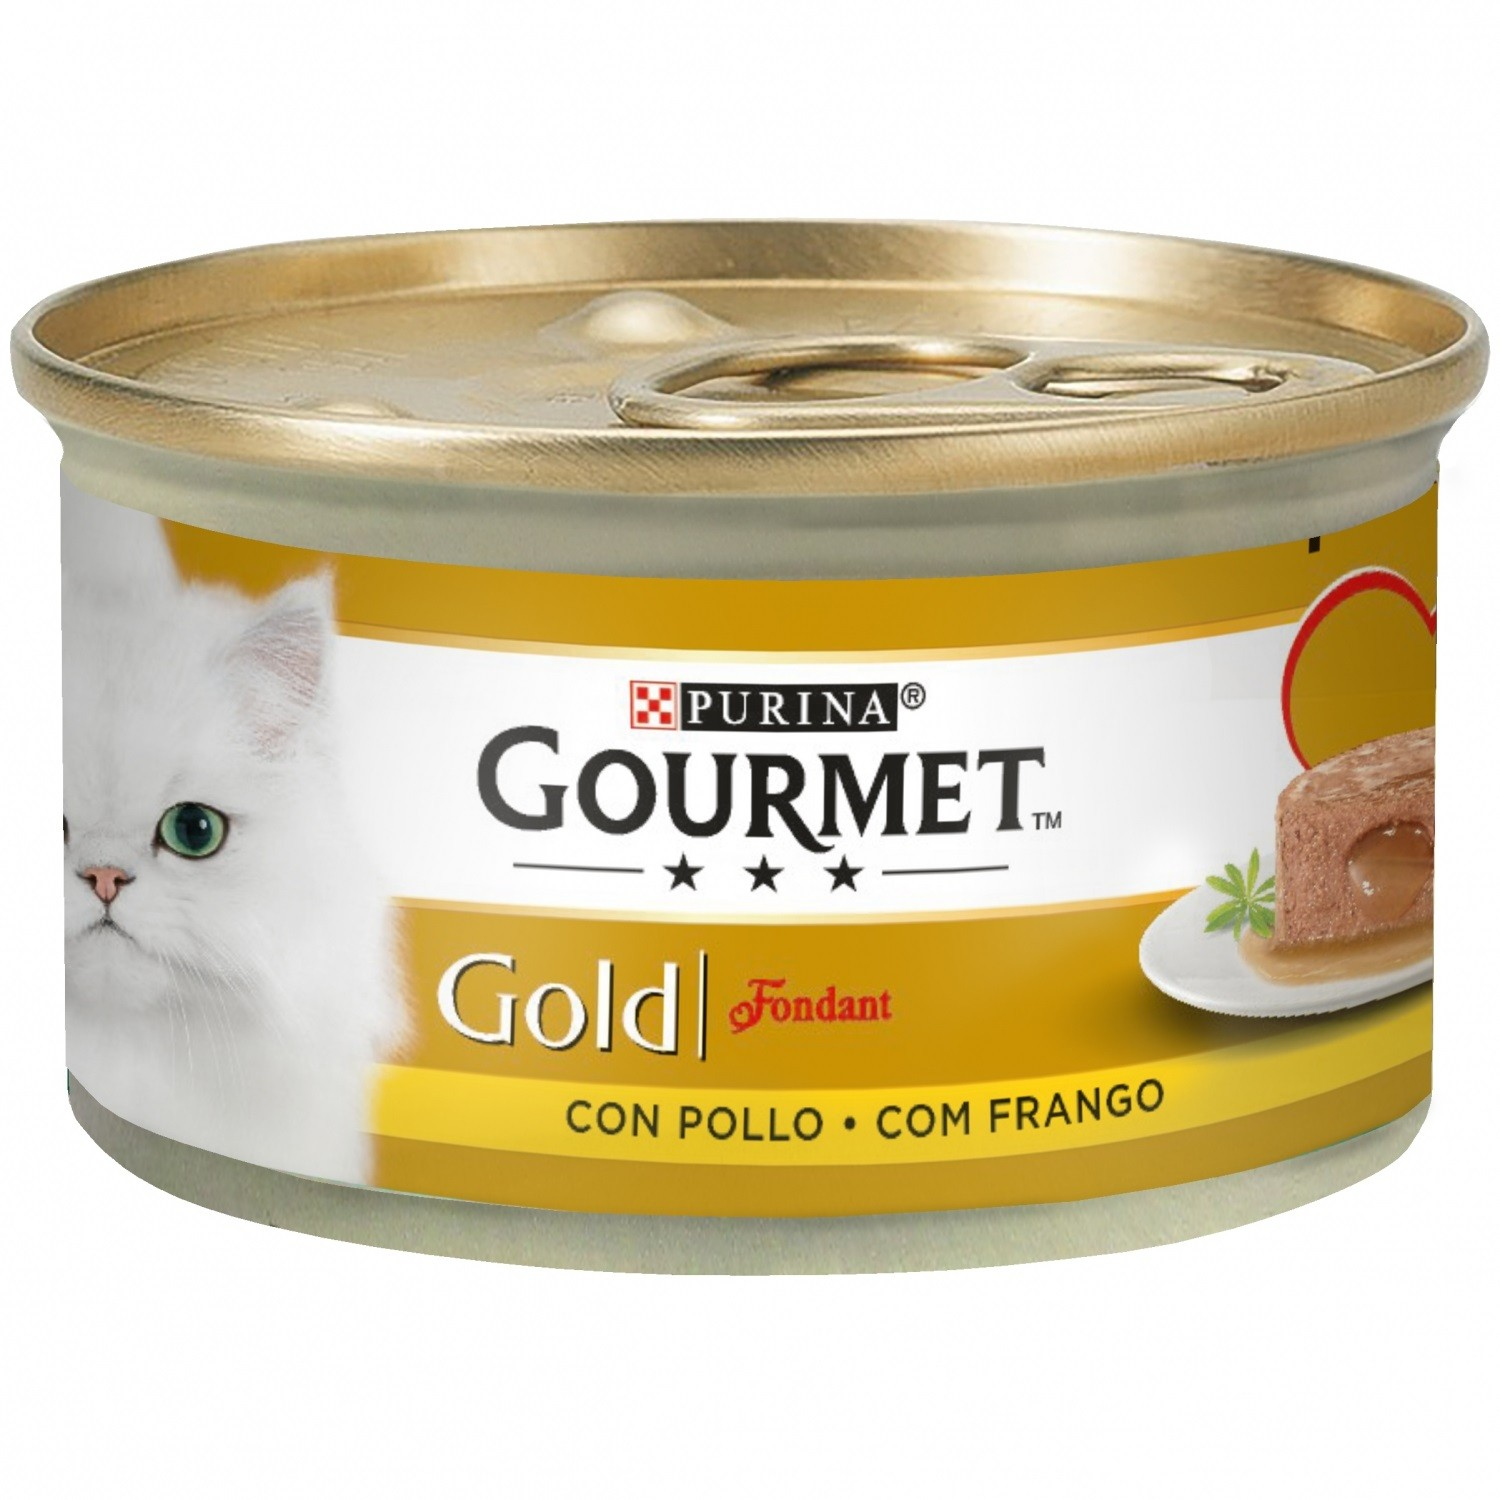 Gourmet Gold Fondant con Pollo 85g (Pack 24 Uds.)